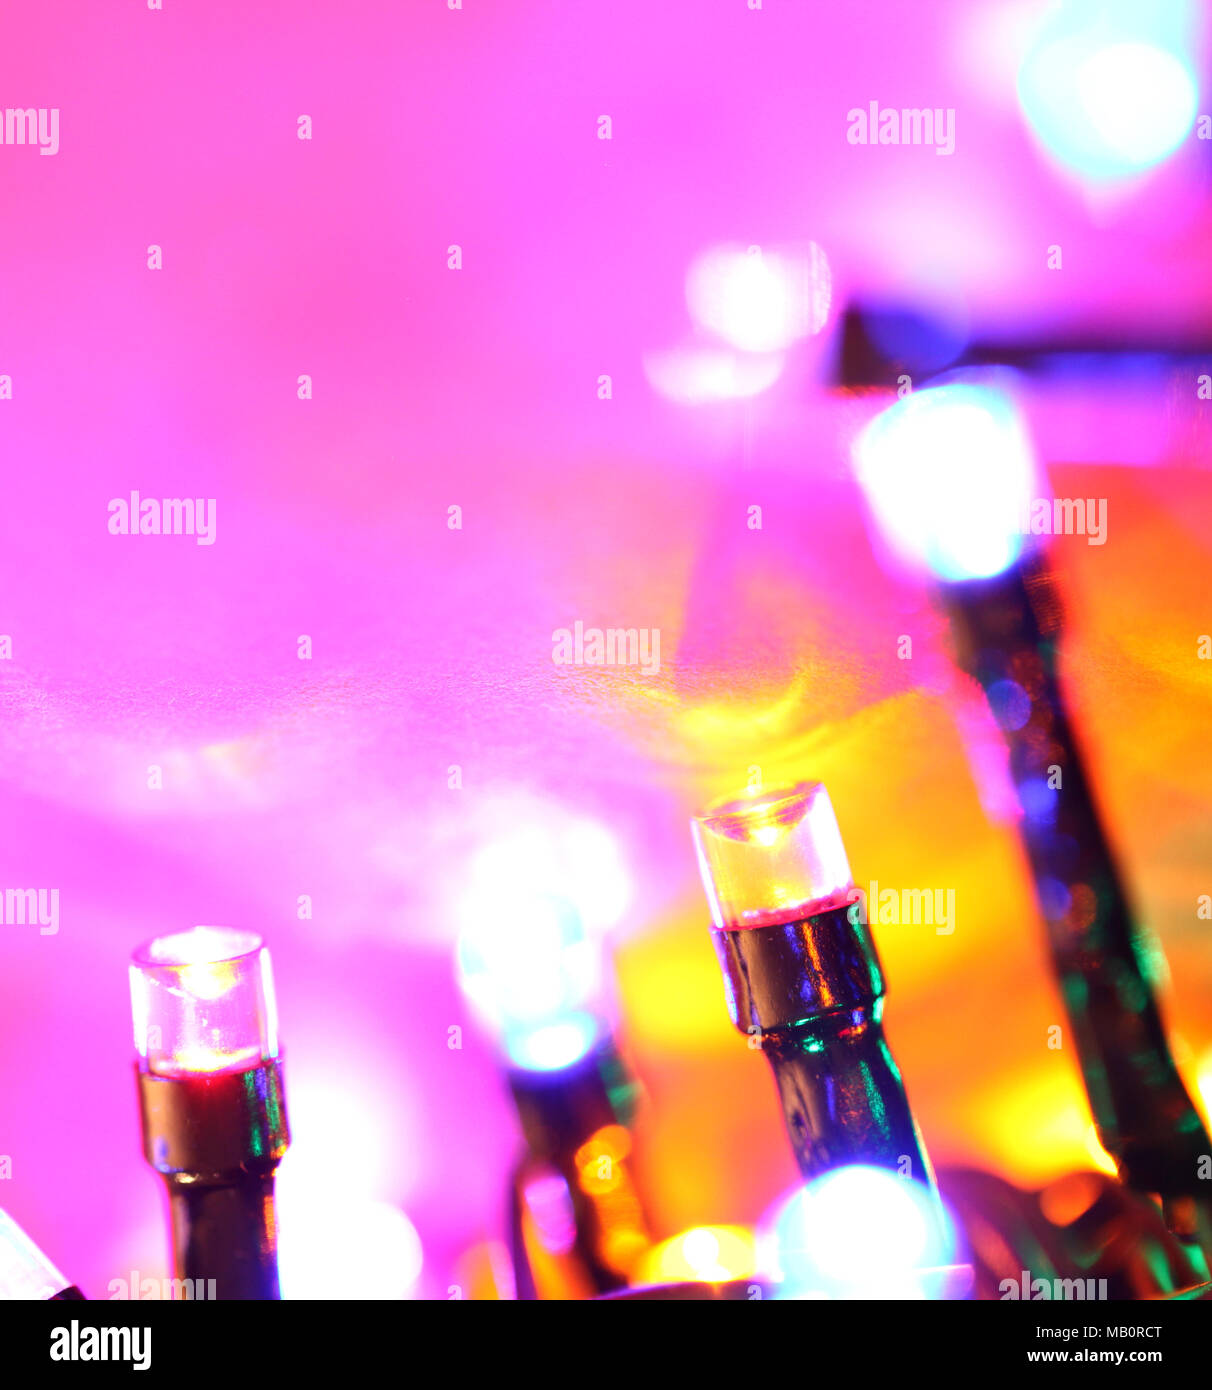 Photo178883288 Led Bulbs Alamy Of Blinking Stock Close Up 3R5jL4A